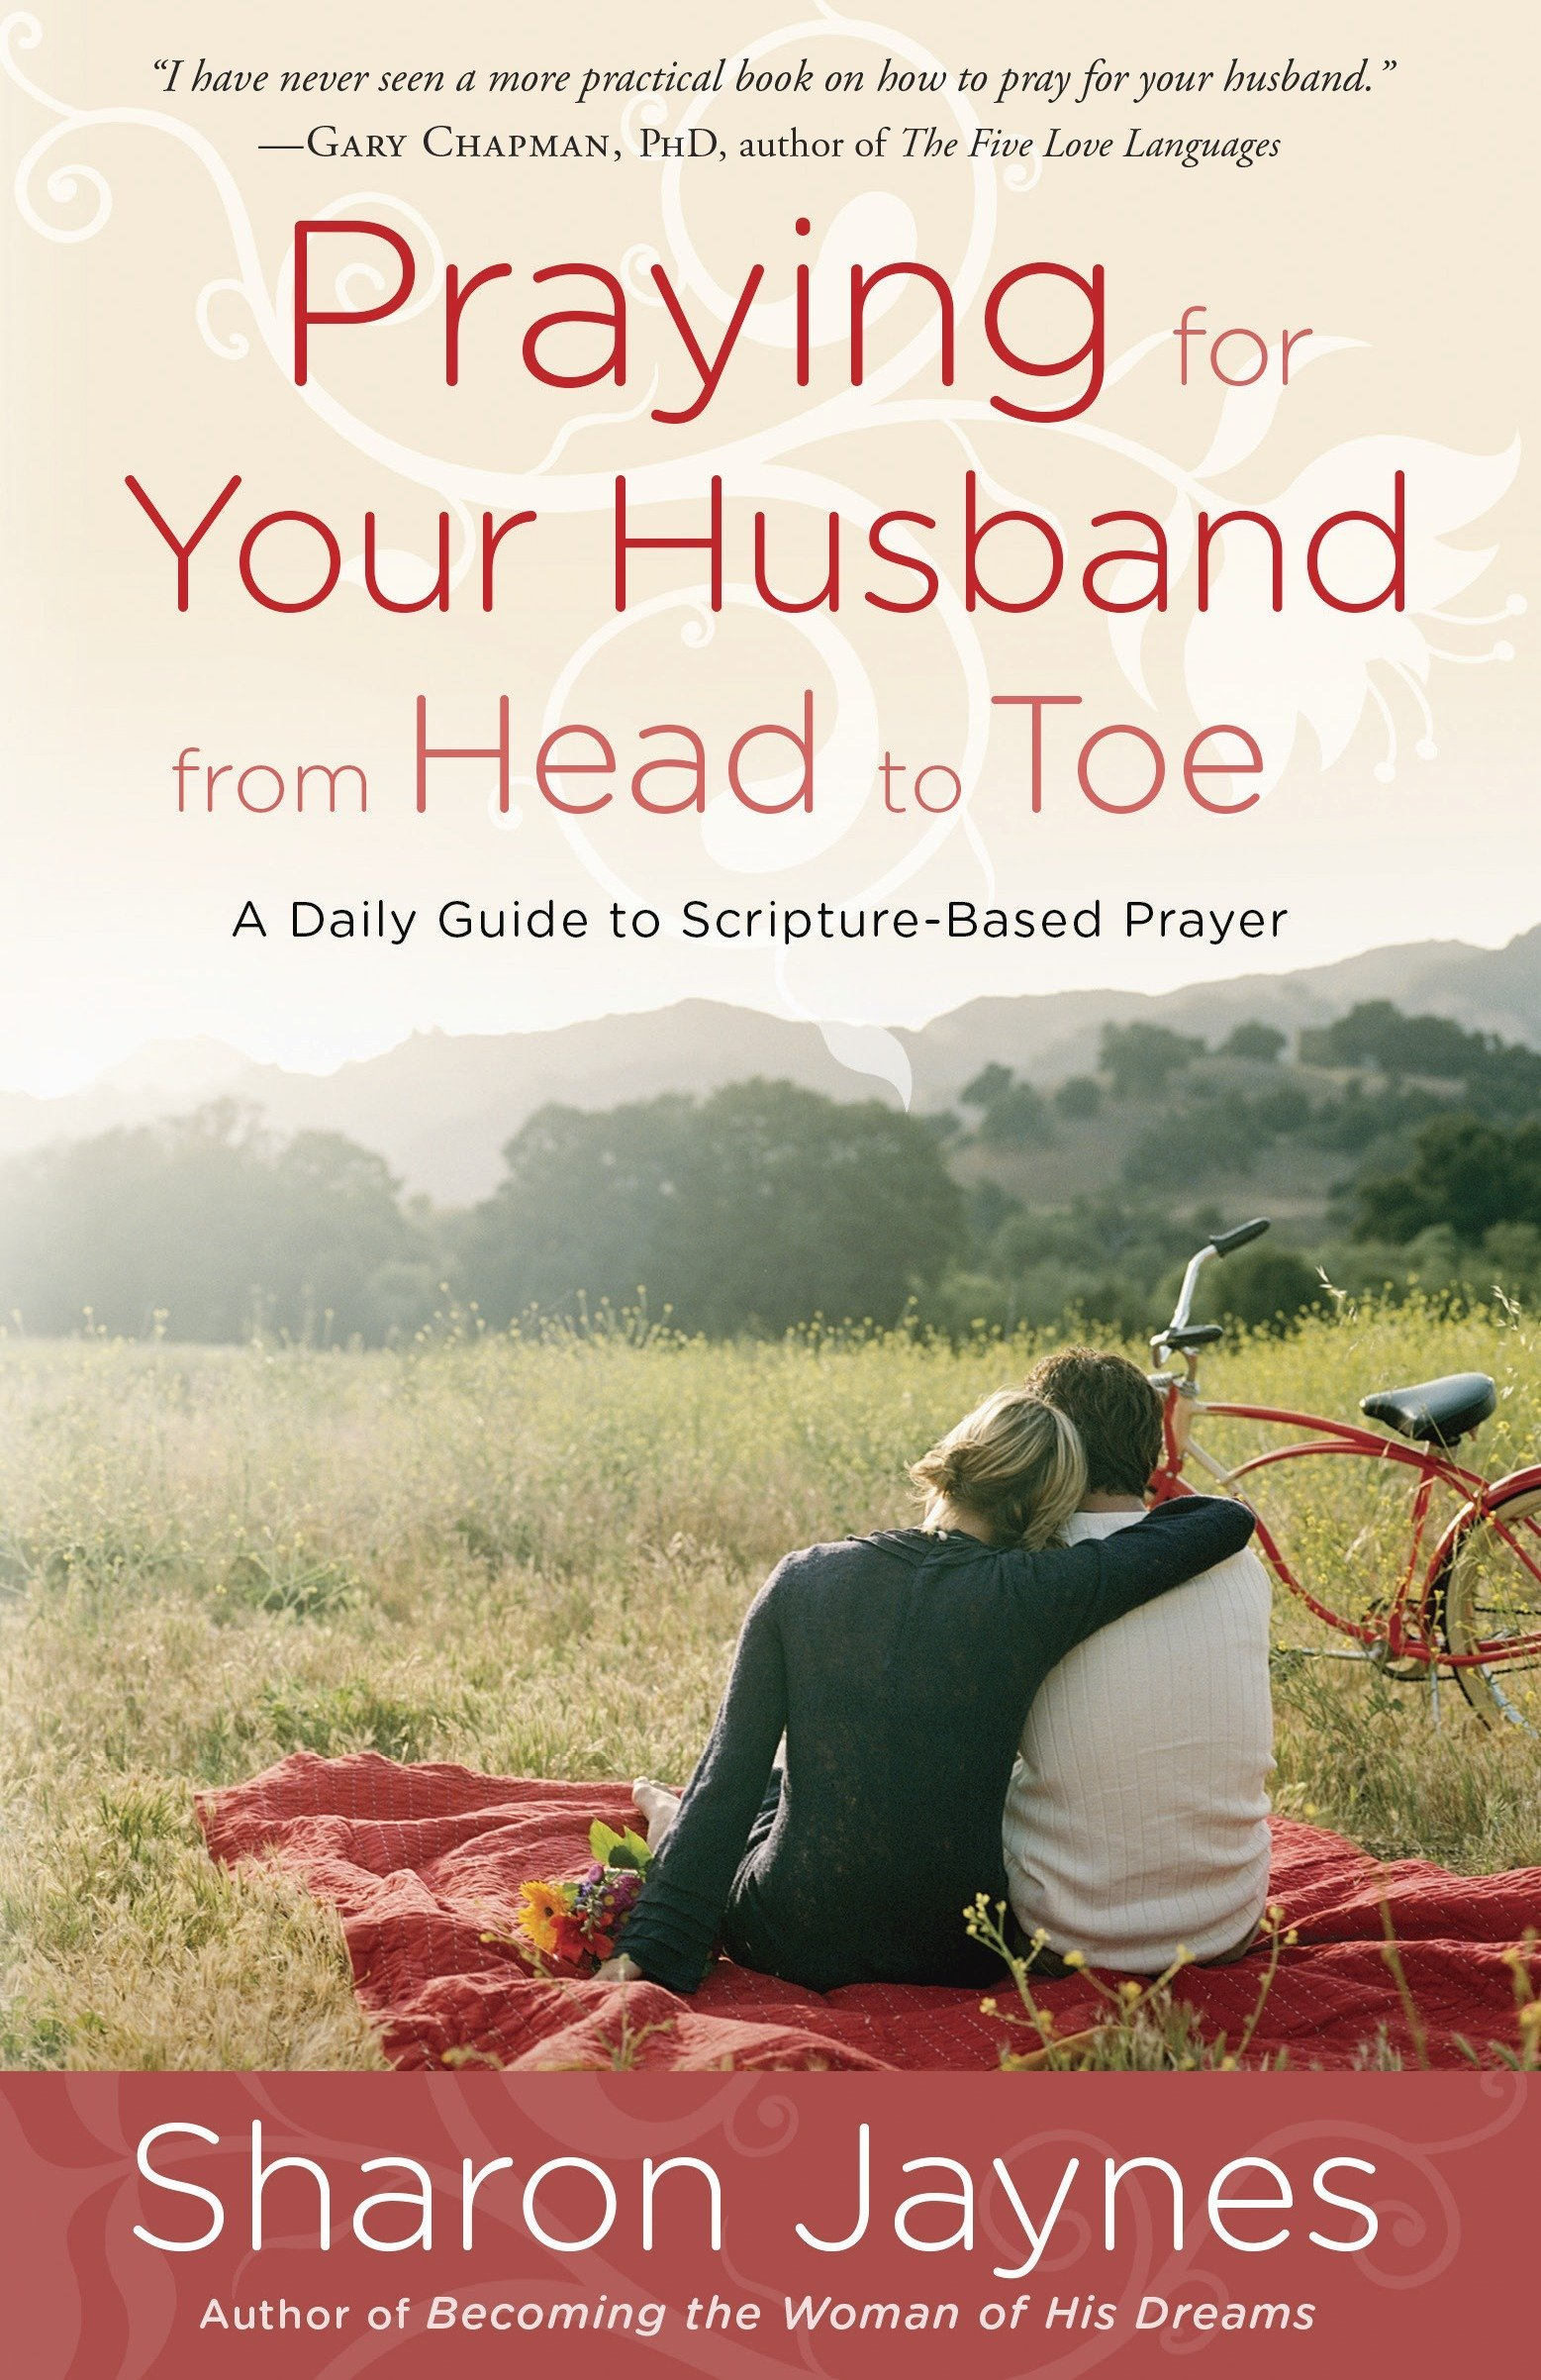 Praying for your husband from head to toe a daily guide to praying for your husband from head to toe a daily guide to scripture based prayer sharon jaynes 9781601424716 amazon books fandeluxe Images